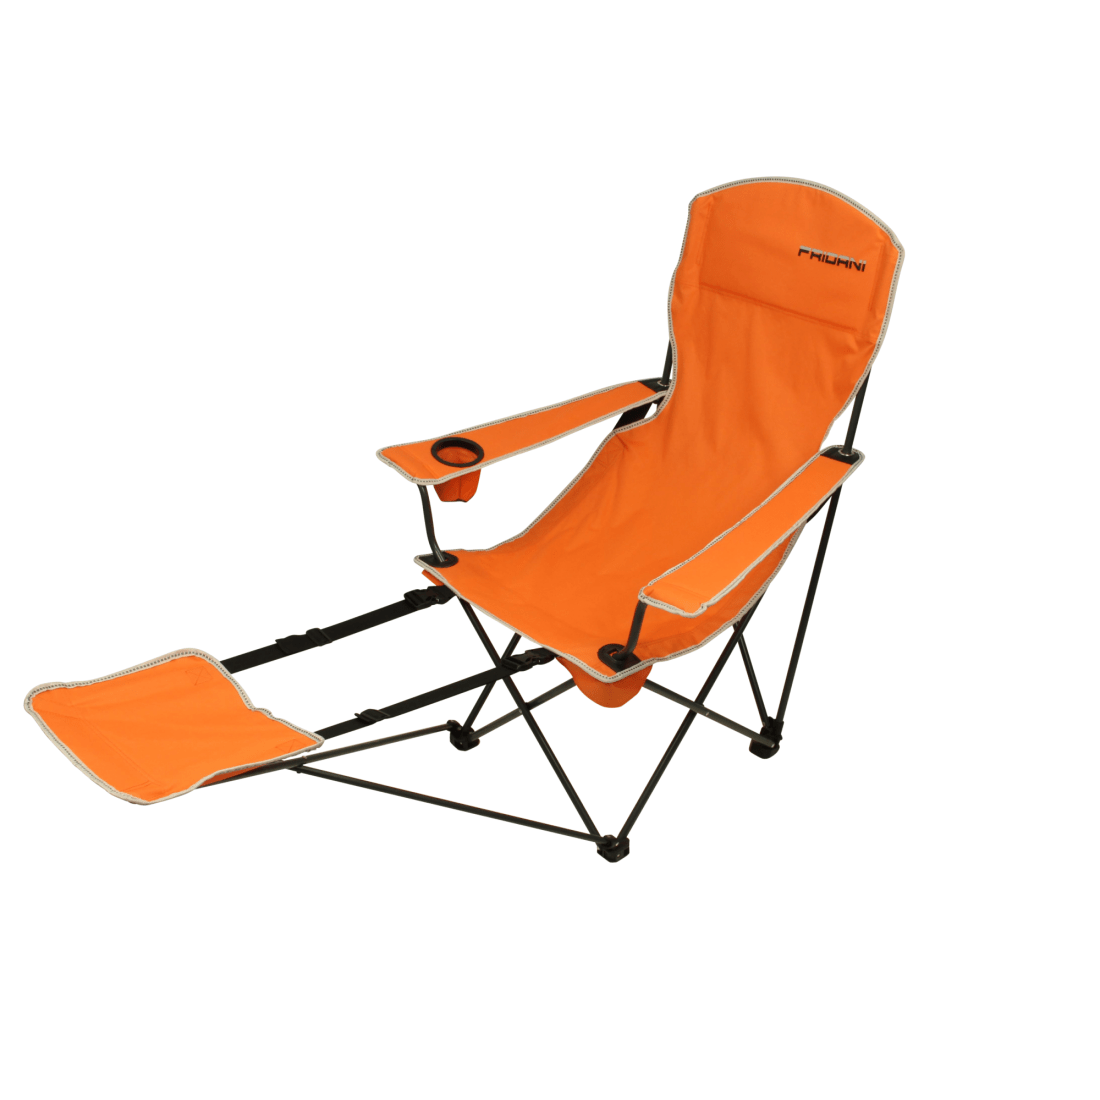 bag chair with footrest red outdoor cushions fridani fro 105 camping foldable